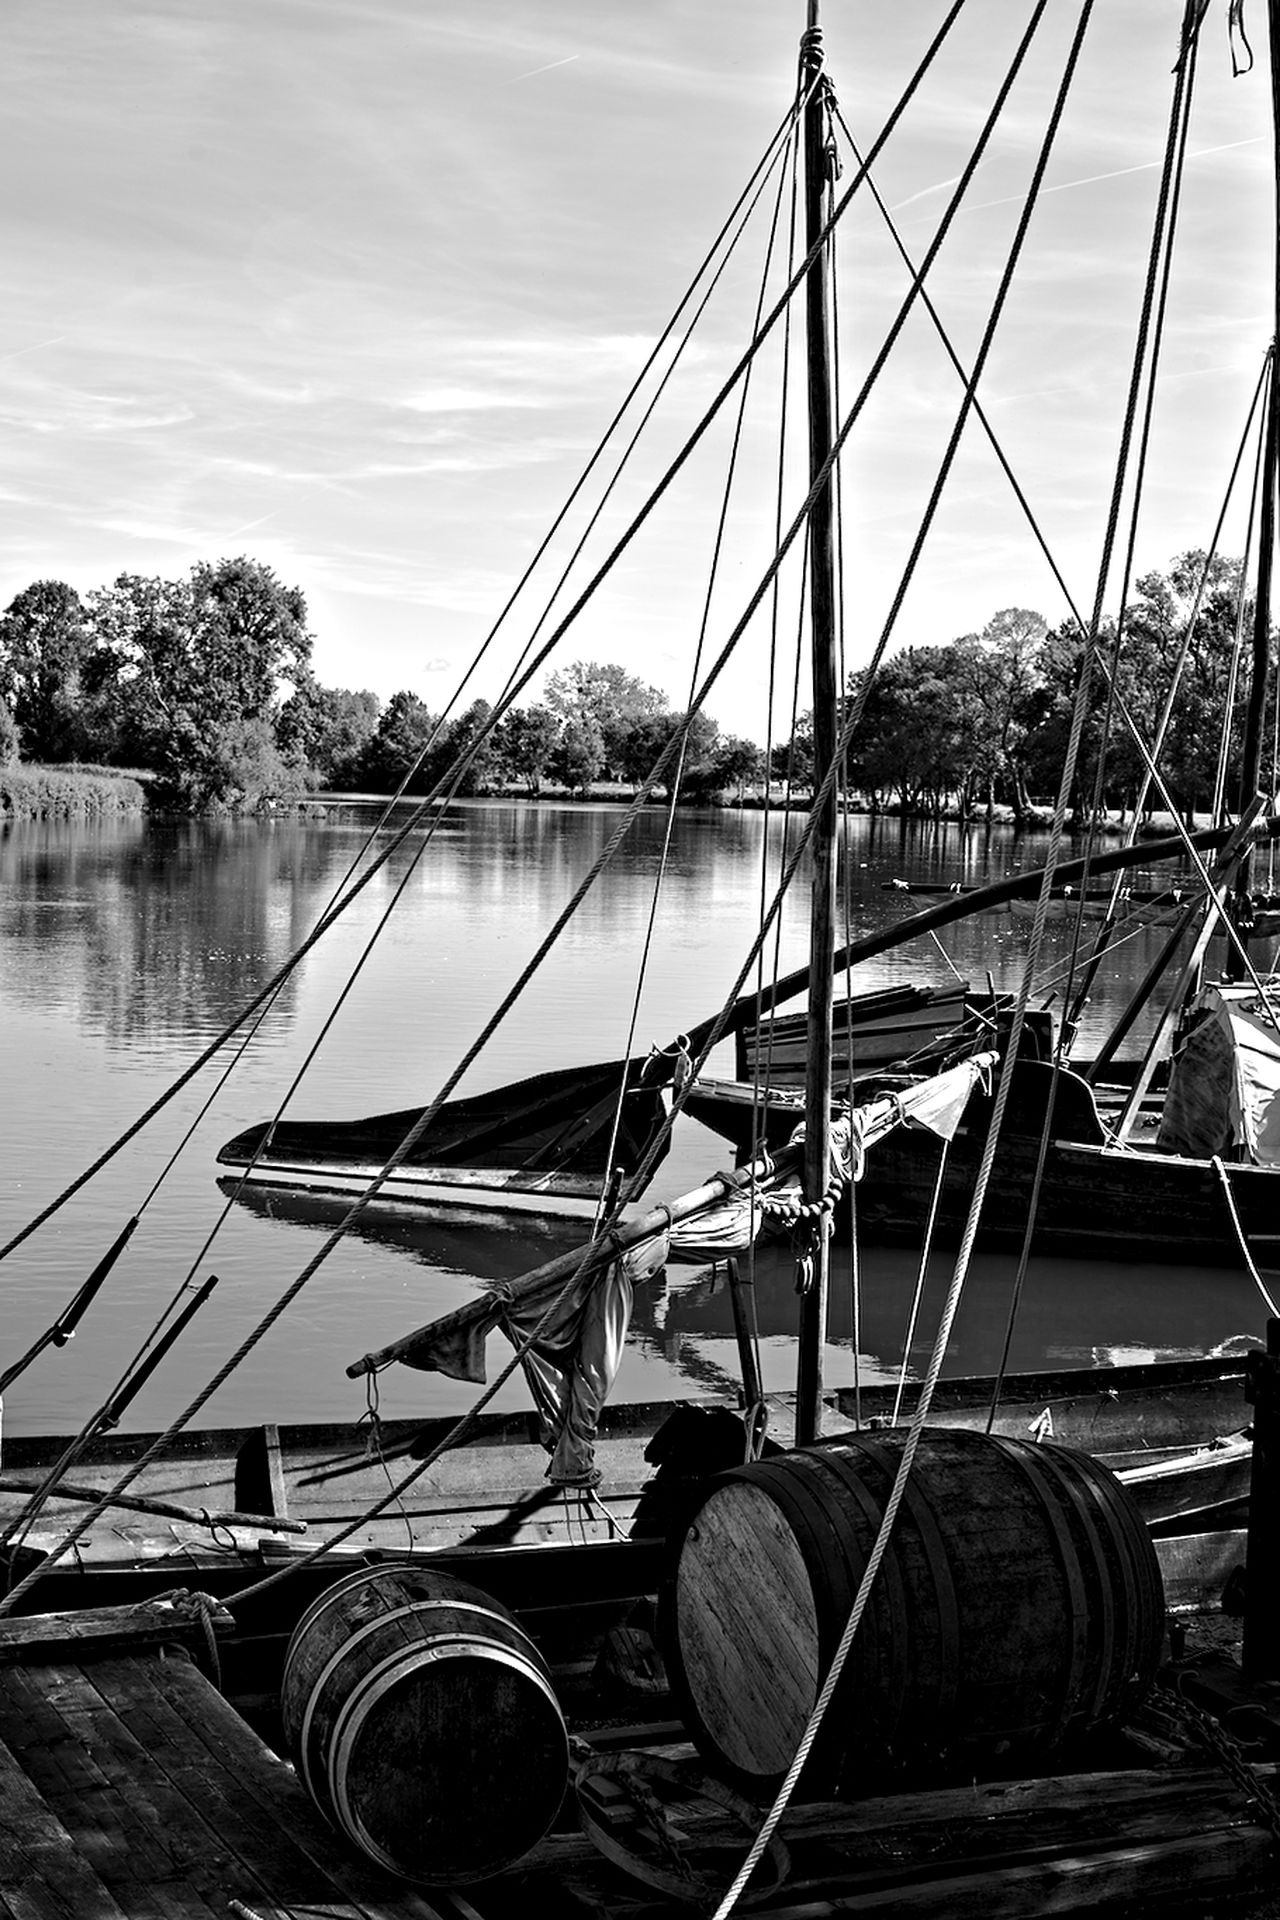 Blackandwhite Blackandwhite Photography Day Mode Of Transport Moored Nature Nautical Vessel No People Outdoors River River View Sky Transportation Tree Water